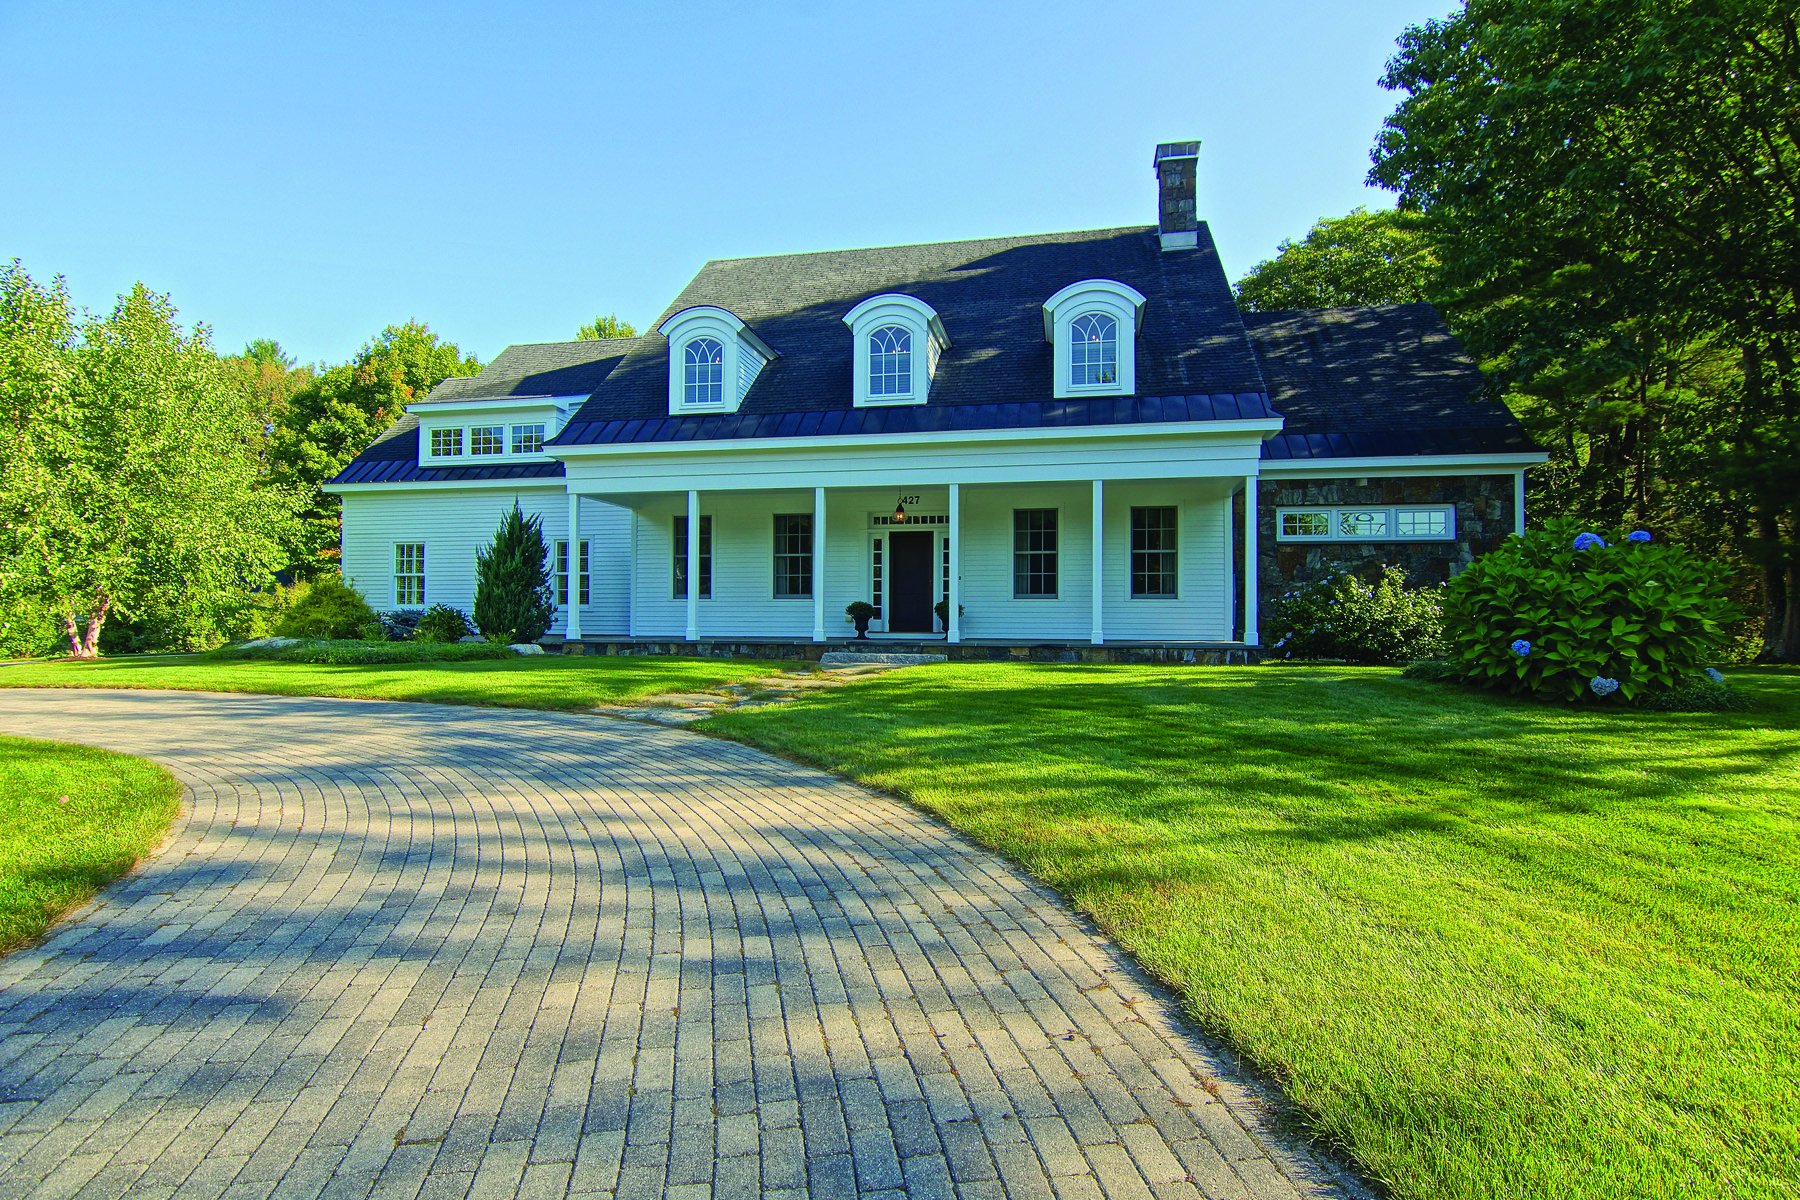 Single Family Home for Sale at Understated Elegance in Rye 427 South Road Rye, New Hampshire 03870 United States